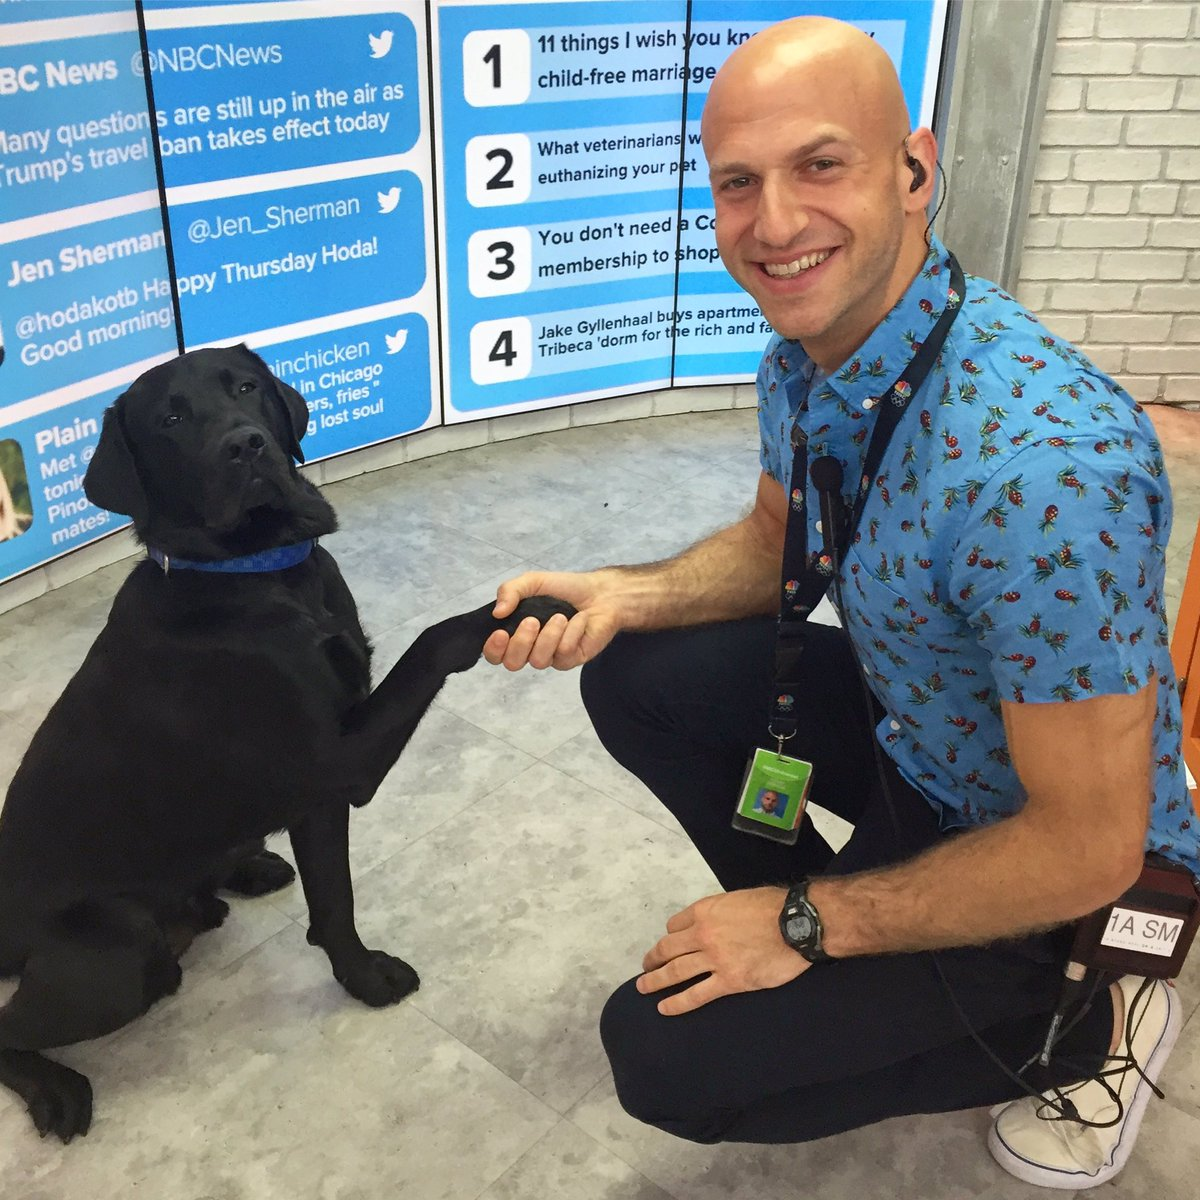 Happy National Handshake Day! @TODAYshow @TODAYPuppy #NationalHandshakeDay